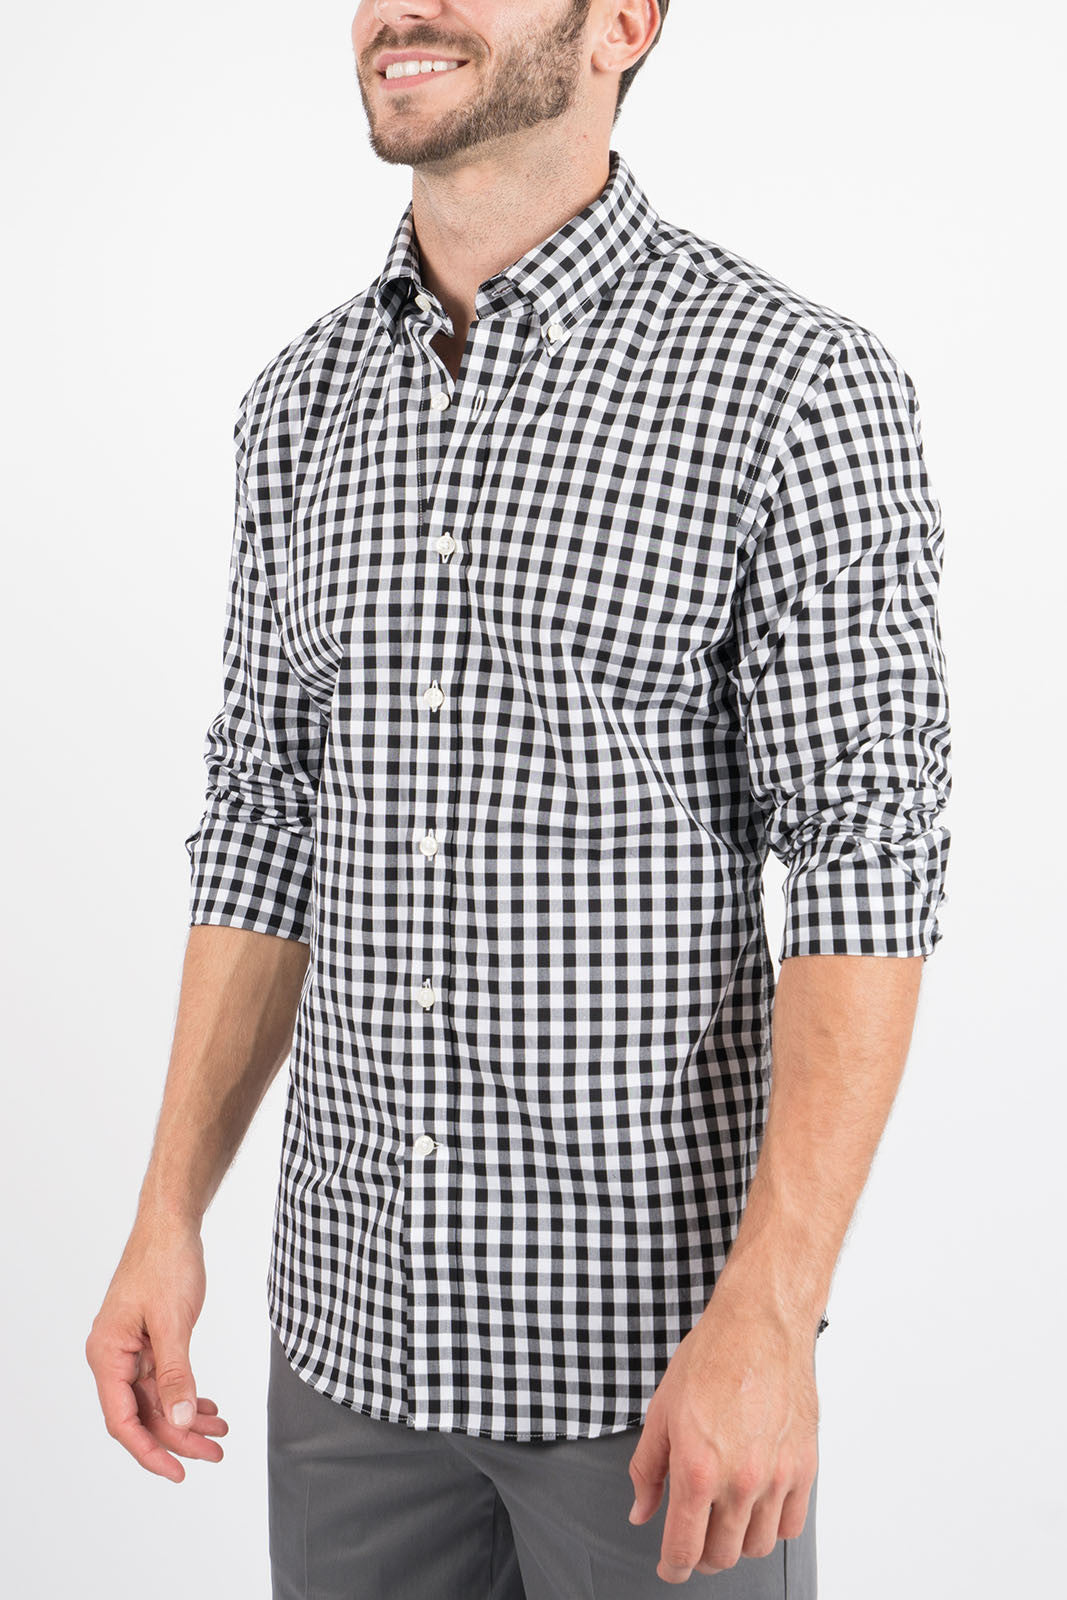 Black Gingham: Semi-Spread Collar, Barrel Cuff